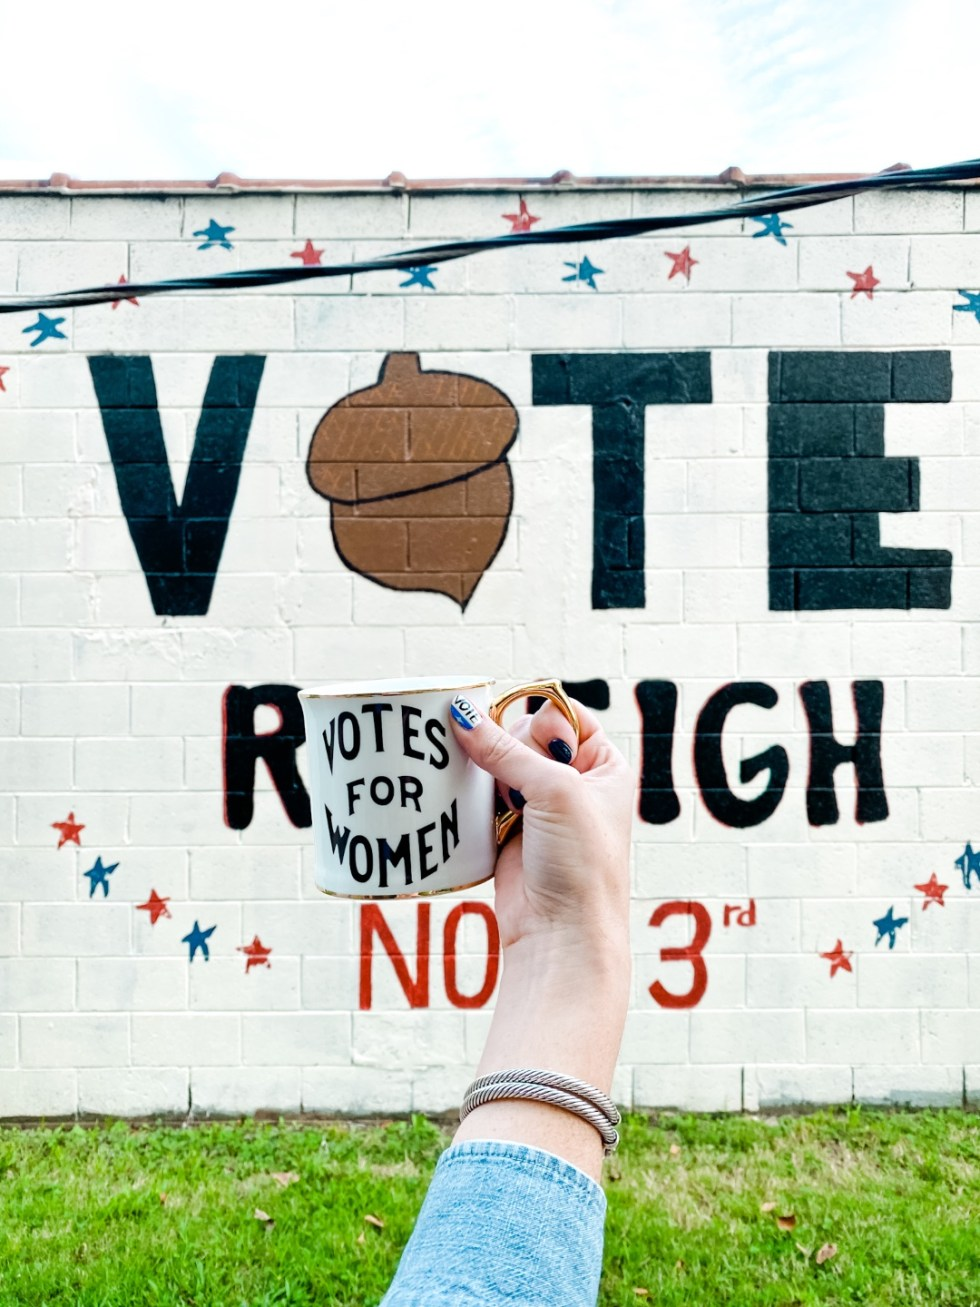 Civic Engagement Fashion Top Picks for Women - I'm Fixin' To - @mbg0112 | Civic Engagement by popular N.C. fashion blog, I'm Fixin' To: image of a woman holding a 'Votes for Women' mug.